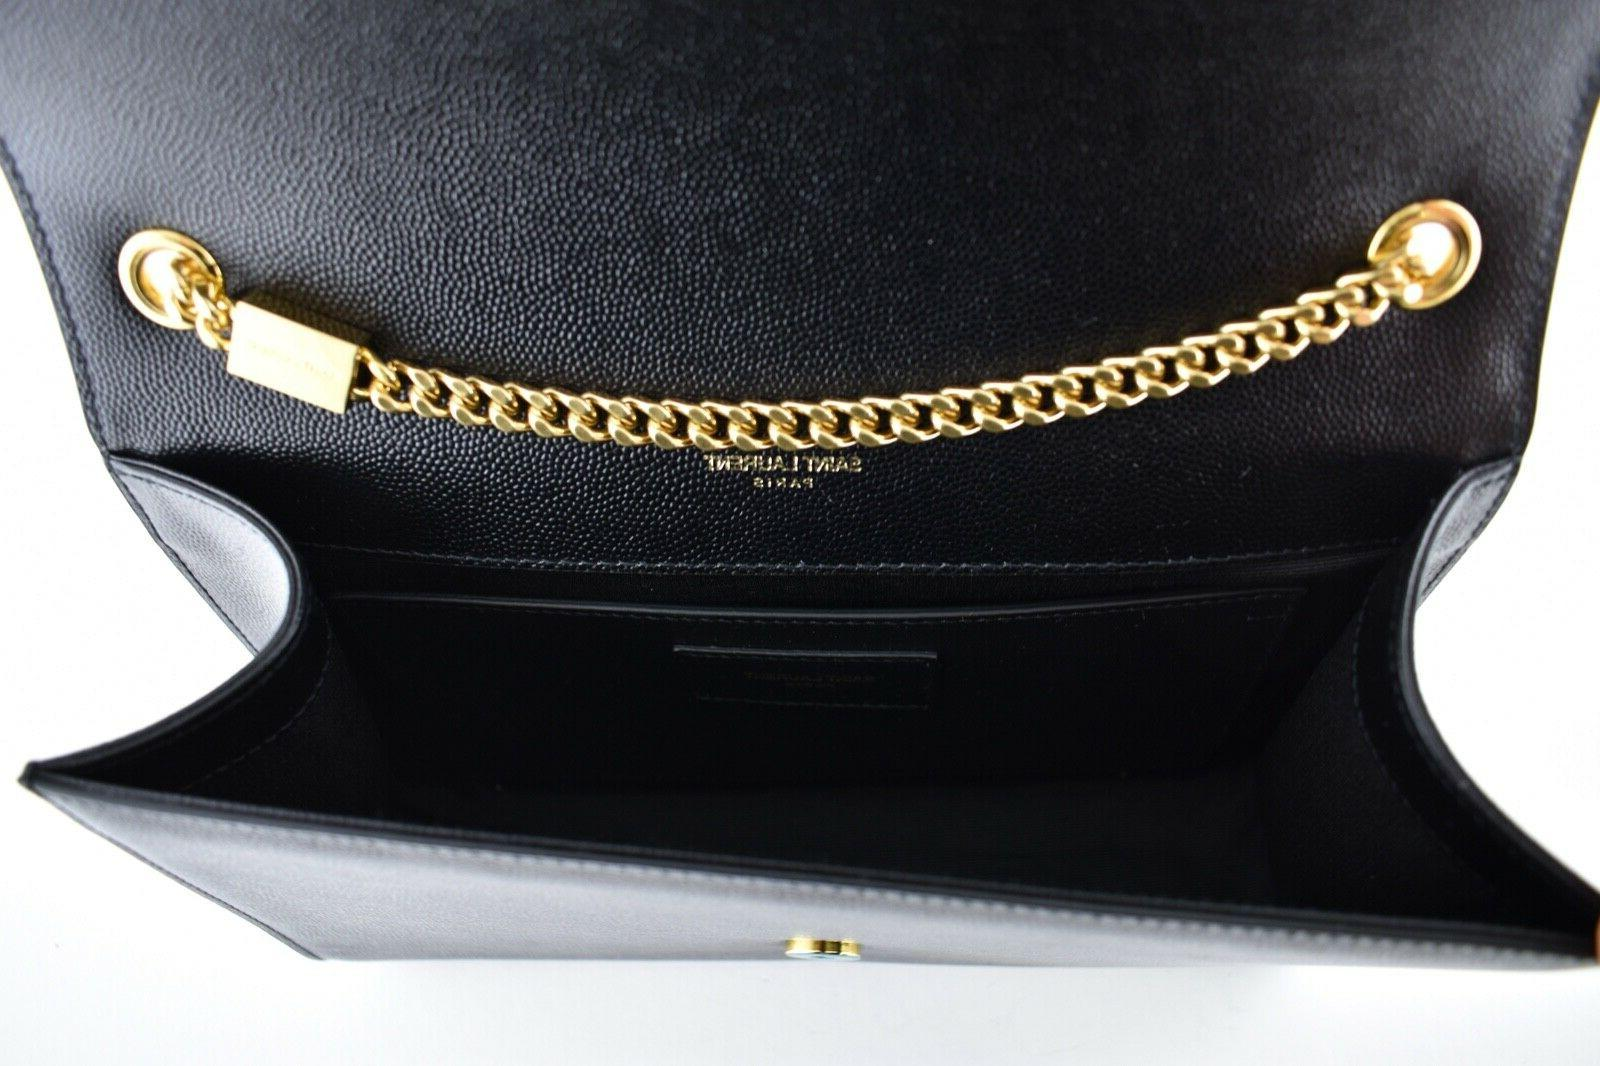 Saint Laurent Gold Tassel Wallet Chain Bag